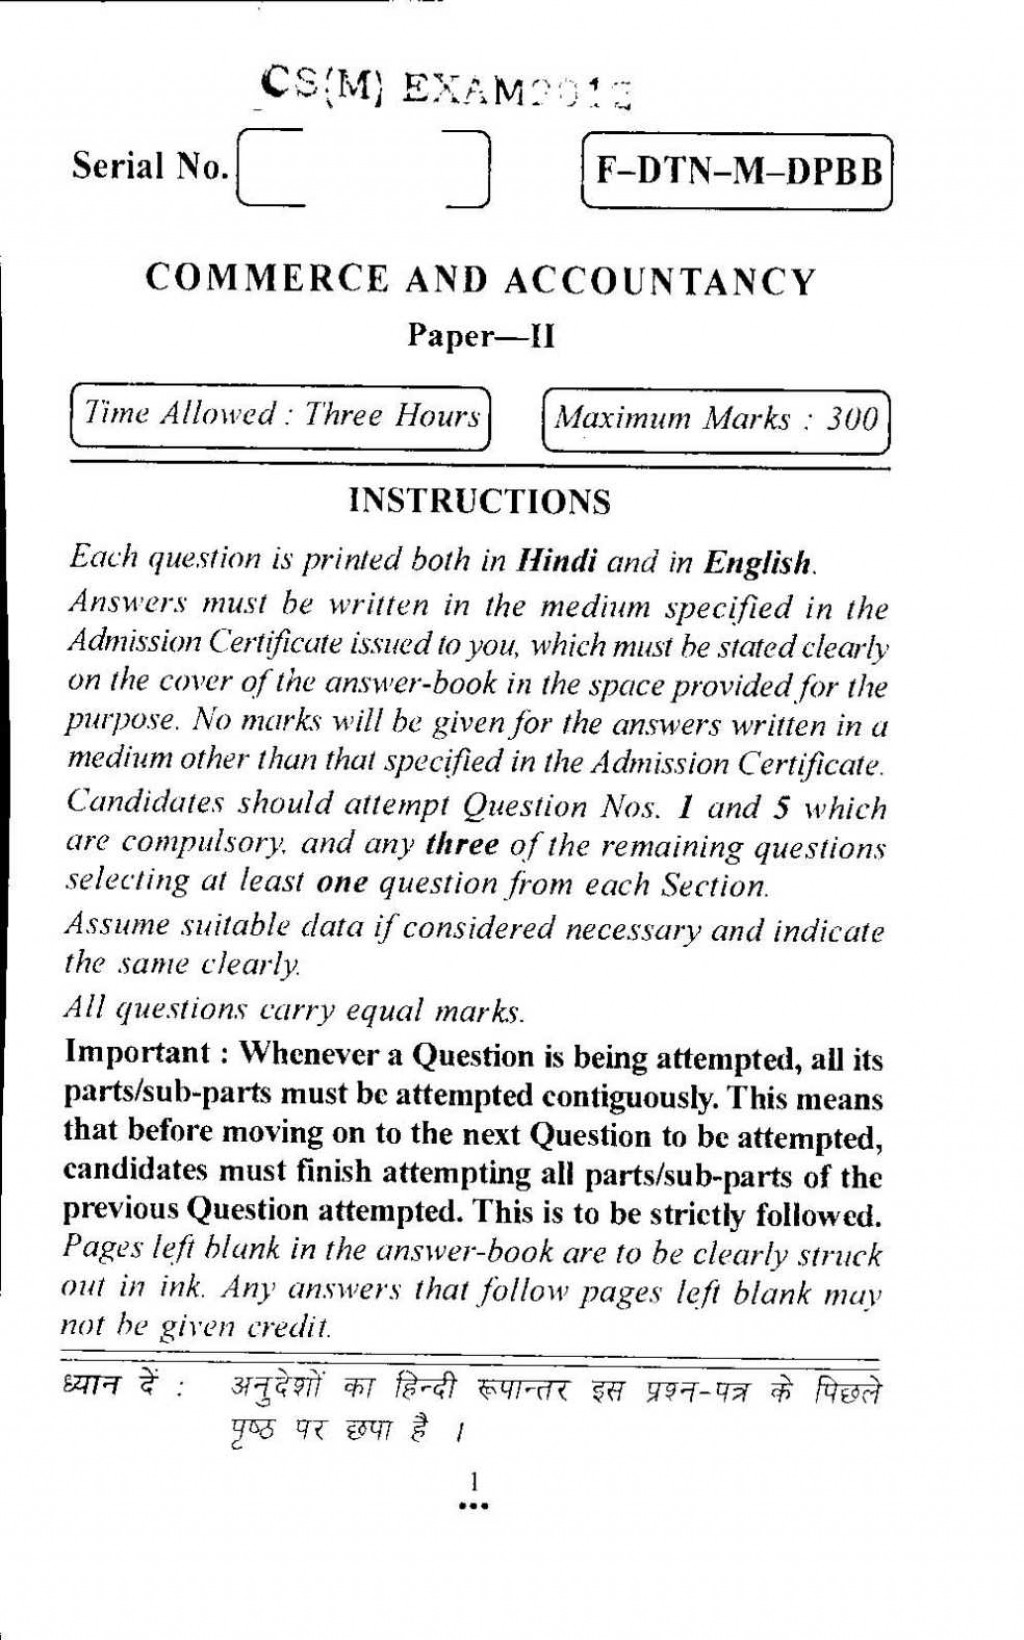 011 Civil Services Examination Commerce And Accountancy Paper Ii Previous Years Que The Wife Beater Essay Stunning Summary Analysis Large